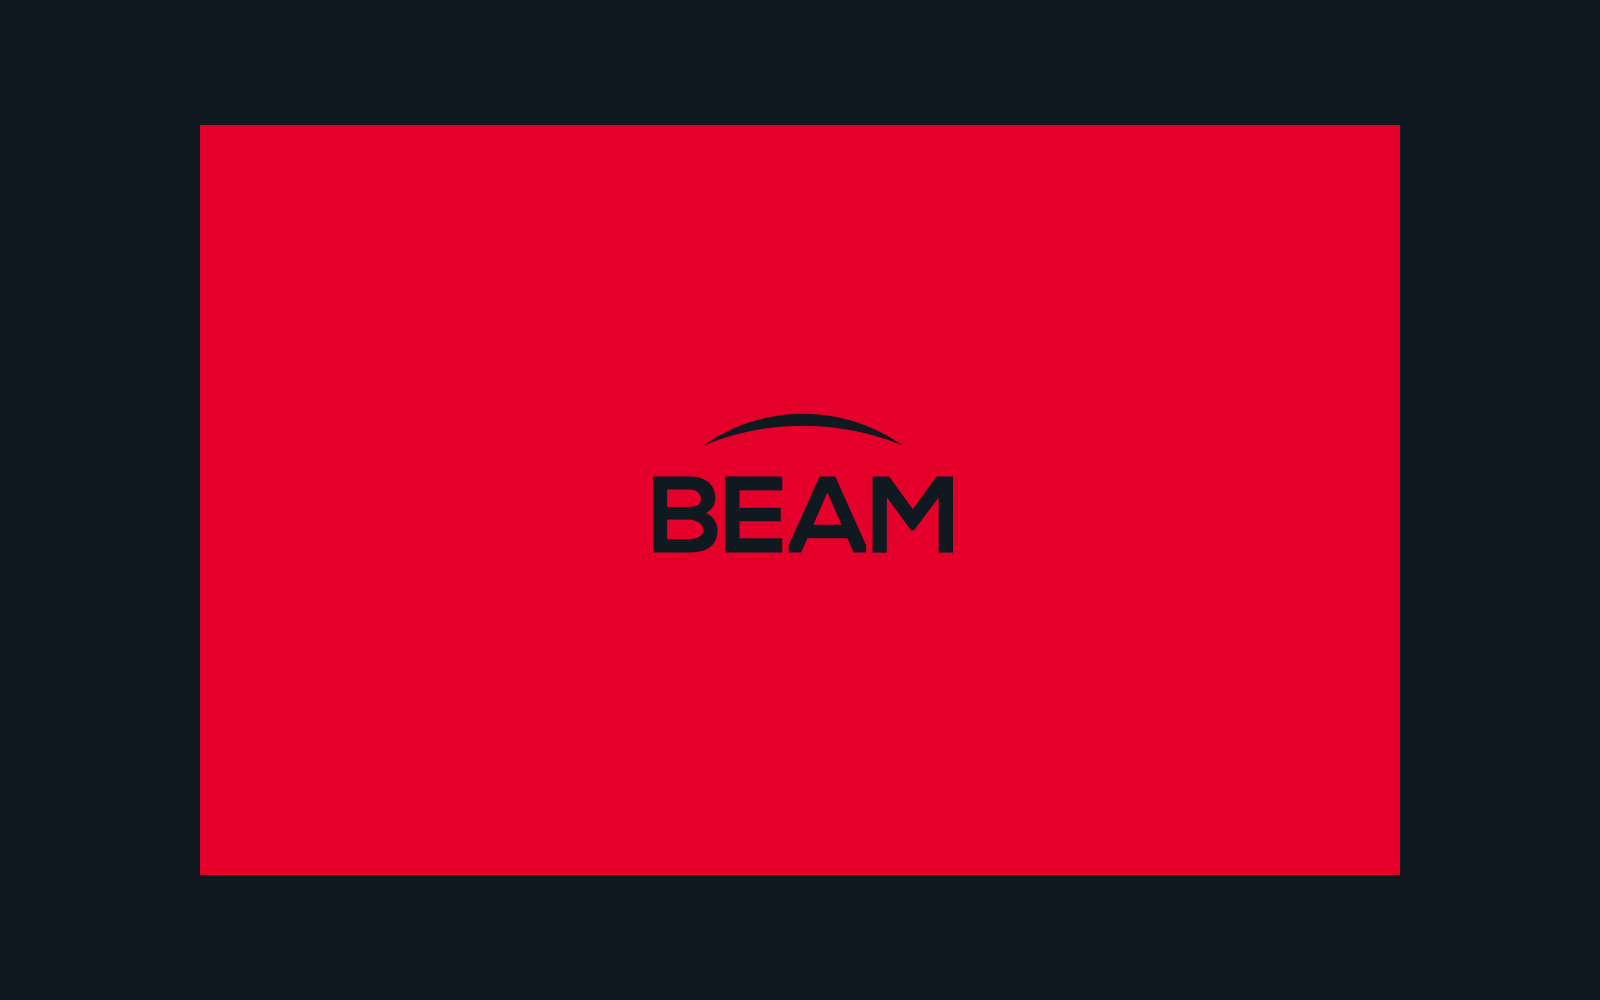 BEAM visual identity by Mark Forscher